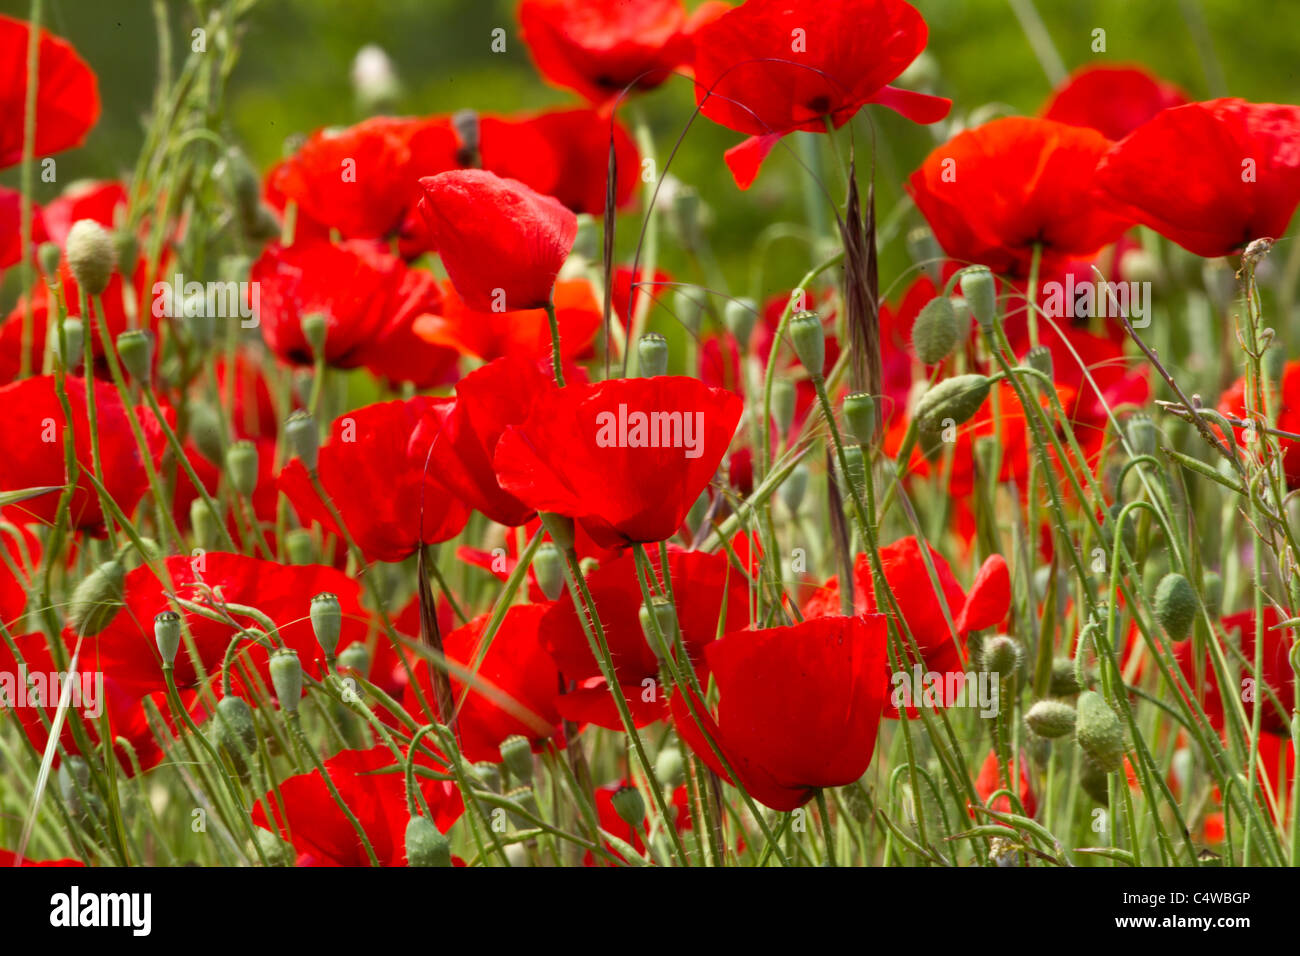 Red Poppies in full bloom - Stock Image